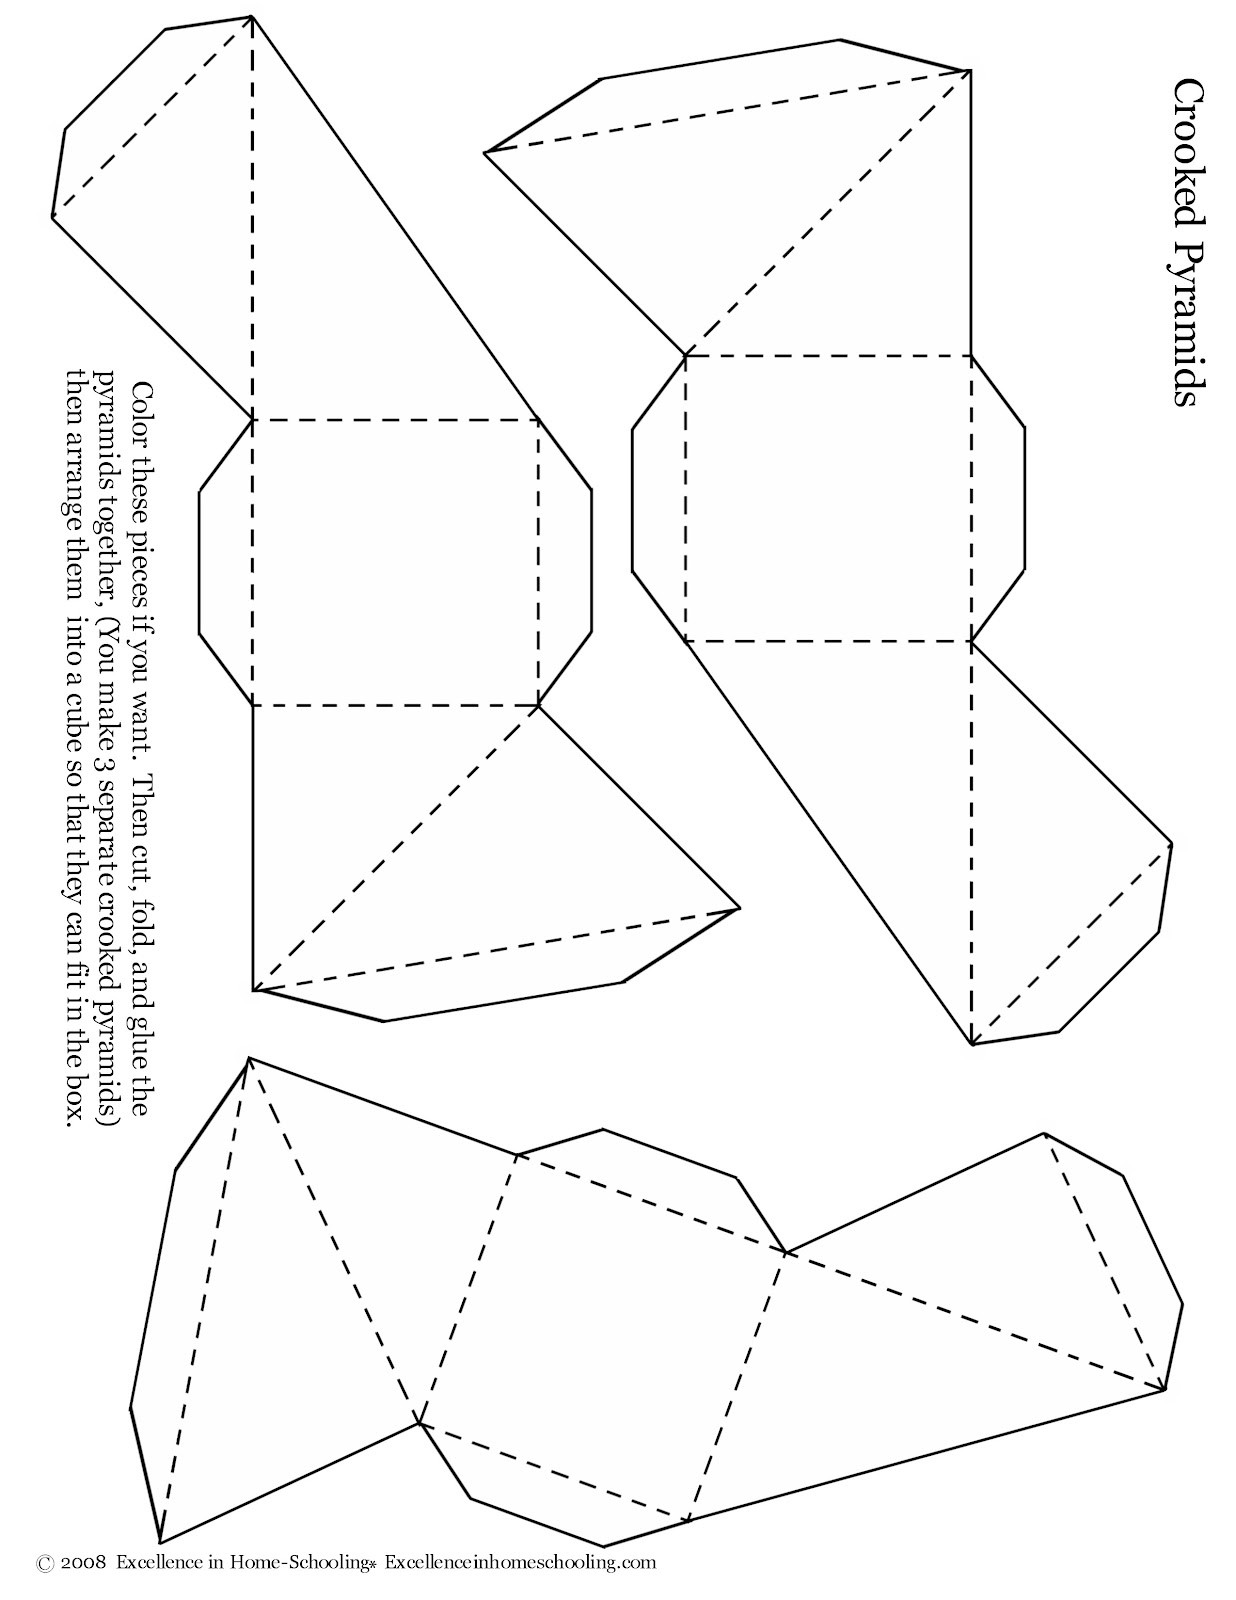 Cross Sections Worksheet 7th Grade Math 7 Review Kitchen Safety Worksheets Cross Sections 3d